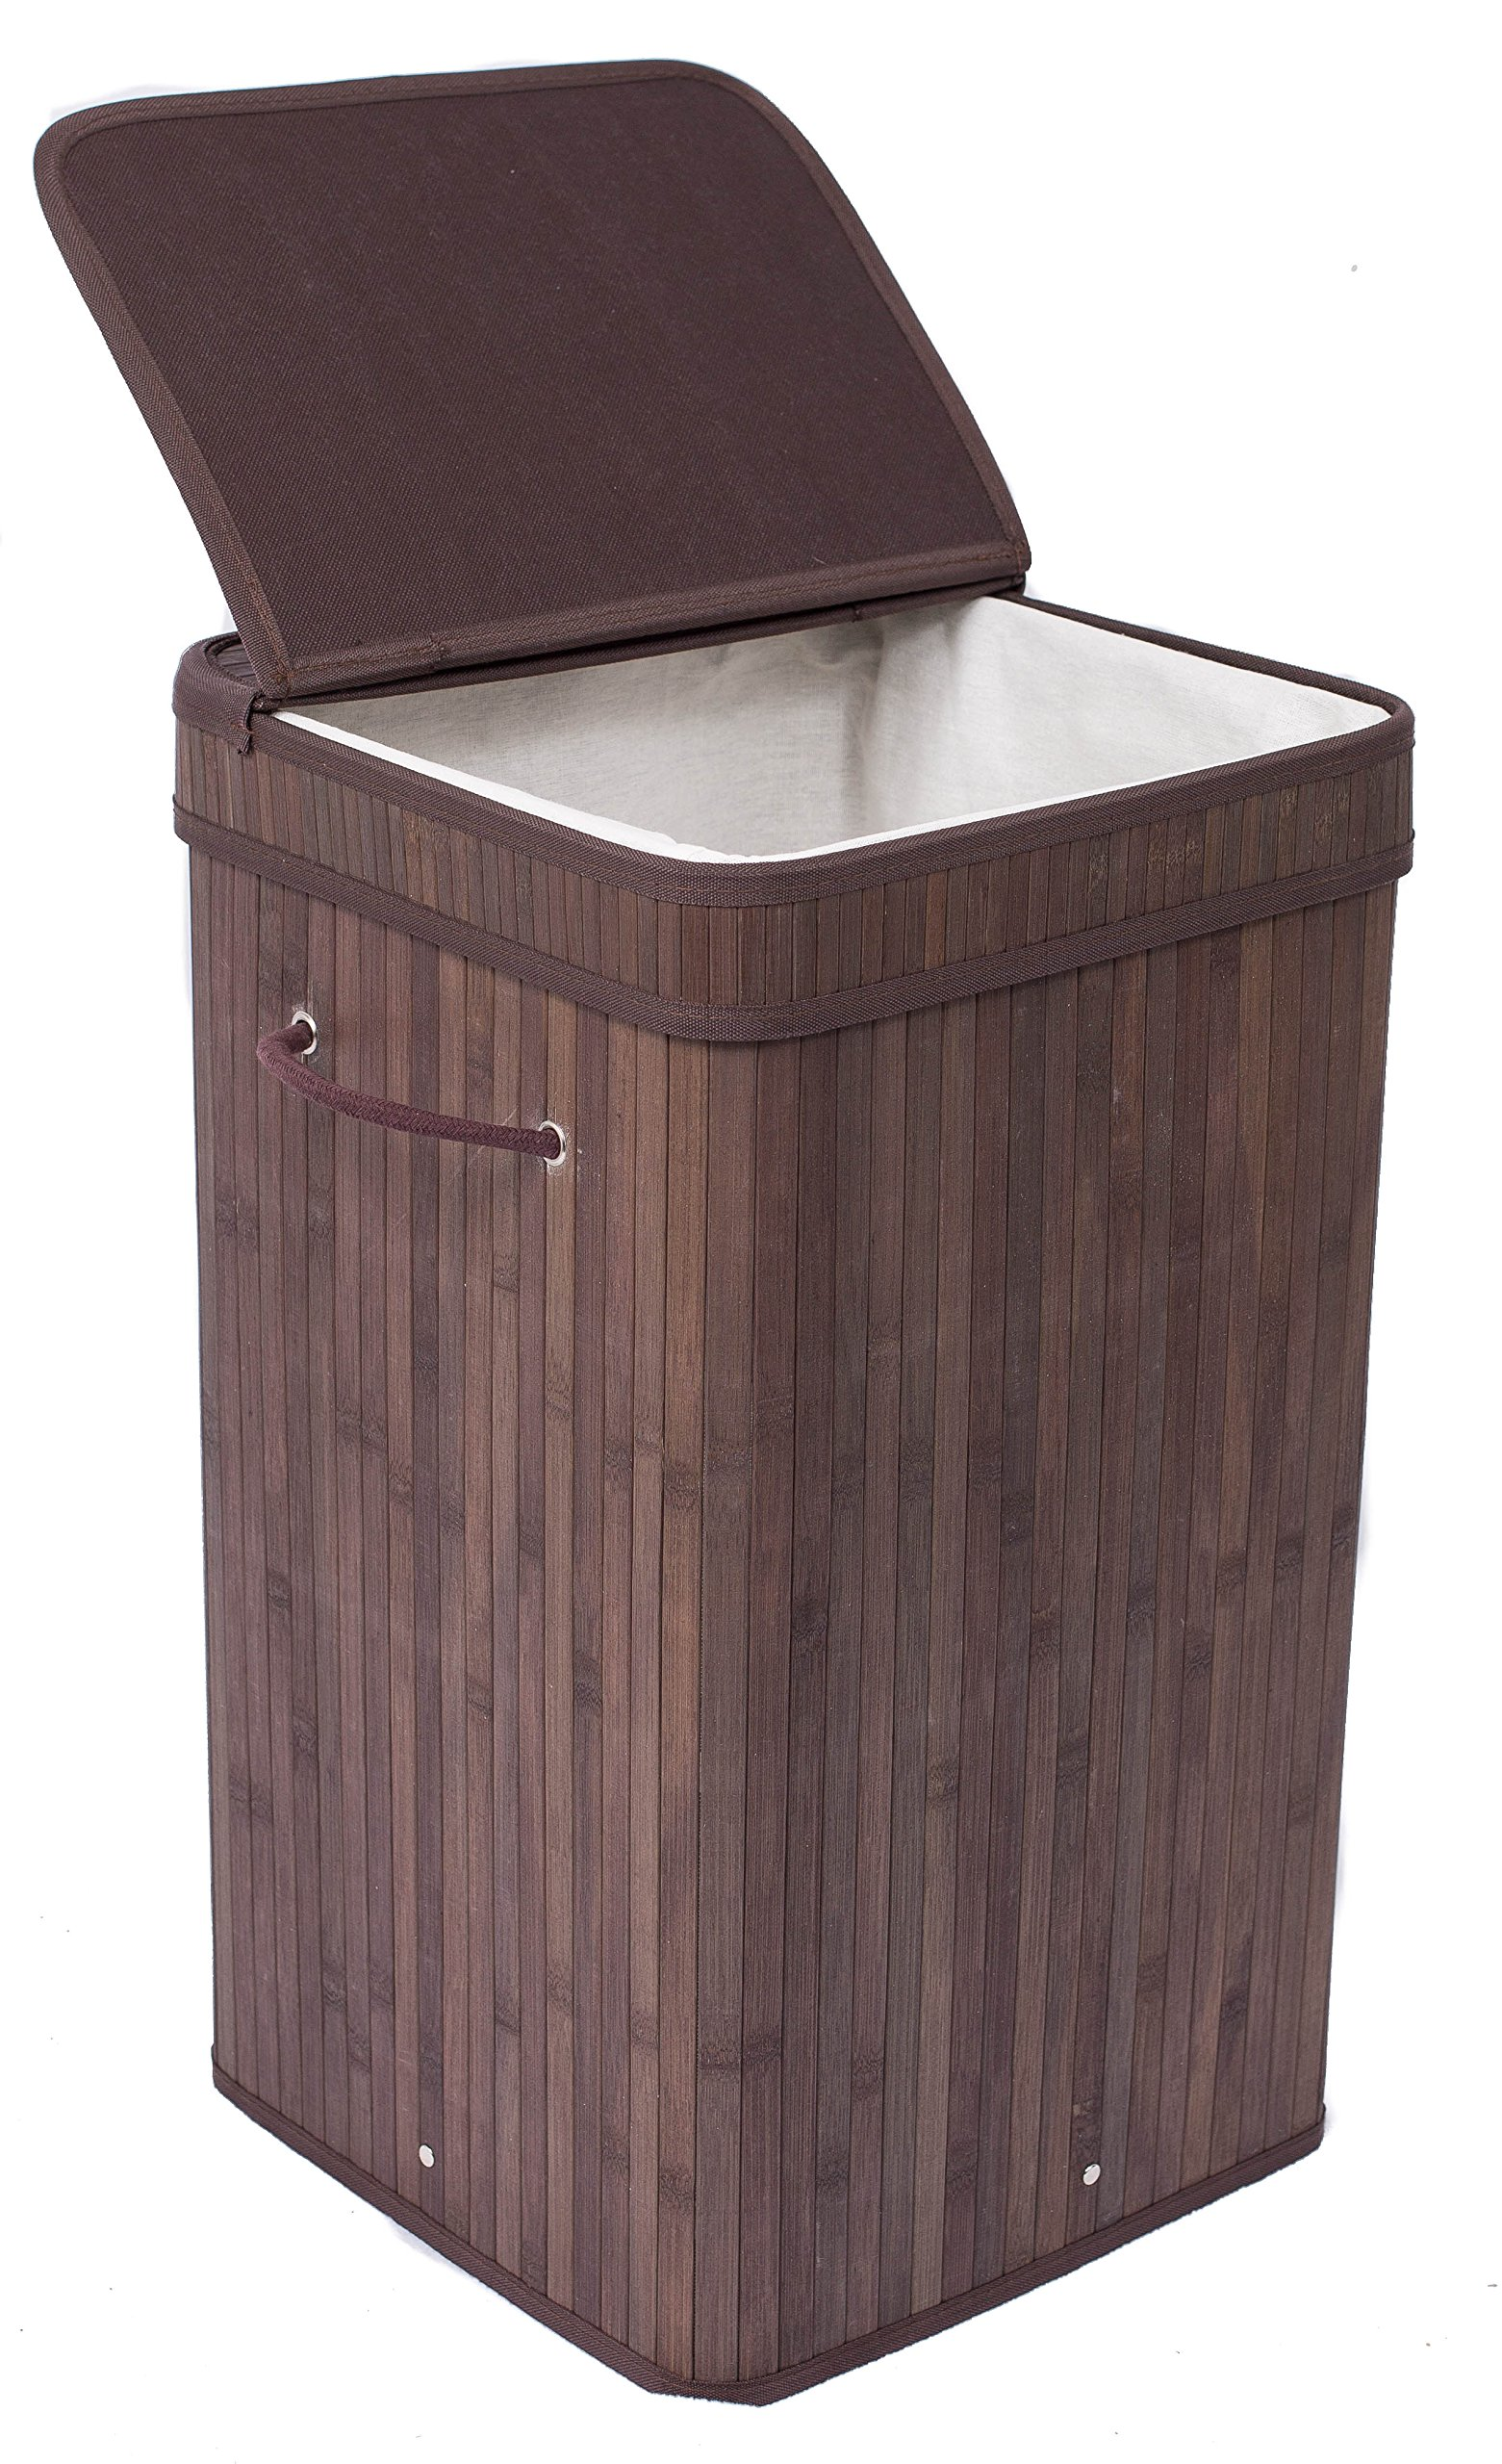 BirdRock Home Square Laundry Hamper with Lid and Cloth Liner | Bamboo | Espresso | Easily Transport Laundry Basket | Collapsible Hamper | String Handles